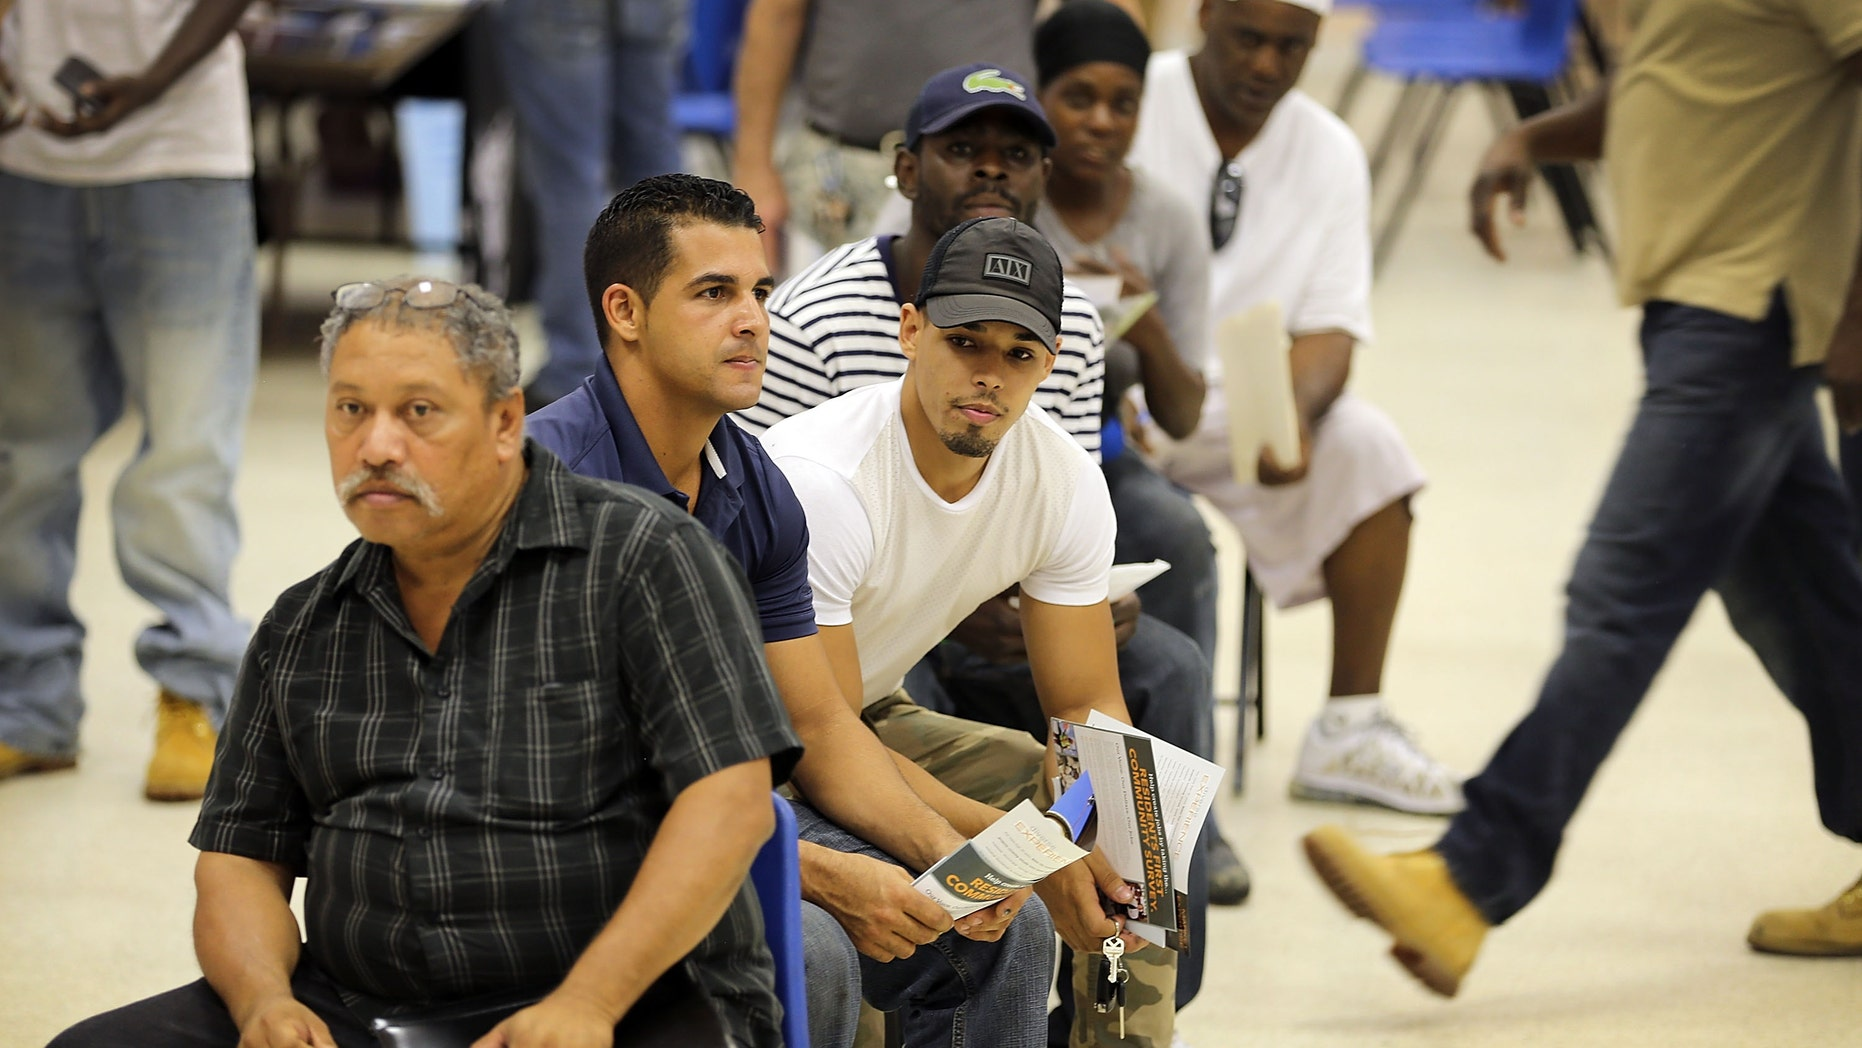 MIAMI, FL - JULY 07:  Job seekers are seated as they wait for an opportunity to apply for a job during the Miami Worldcenter construction job fair on July 7, 2015 in Miami, Florida. Miami Worldcenter is a real estate development projected that is expected to be built on 27 acres of vacant land in the center of Downtown Miami's urban core and  during phase one of the project, estimates to yield approximately 18,000 direct jobs and $1 billion in new economic impact, according to a study released by Miami Worldcenter.  (Photo by Joe Raedle/Getty Images)